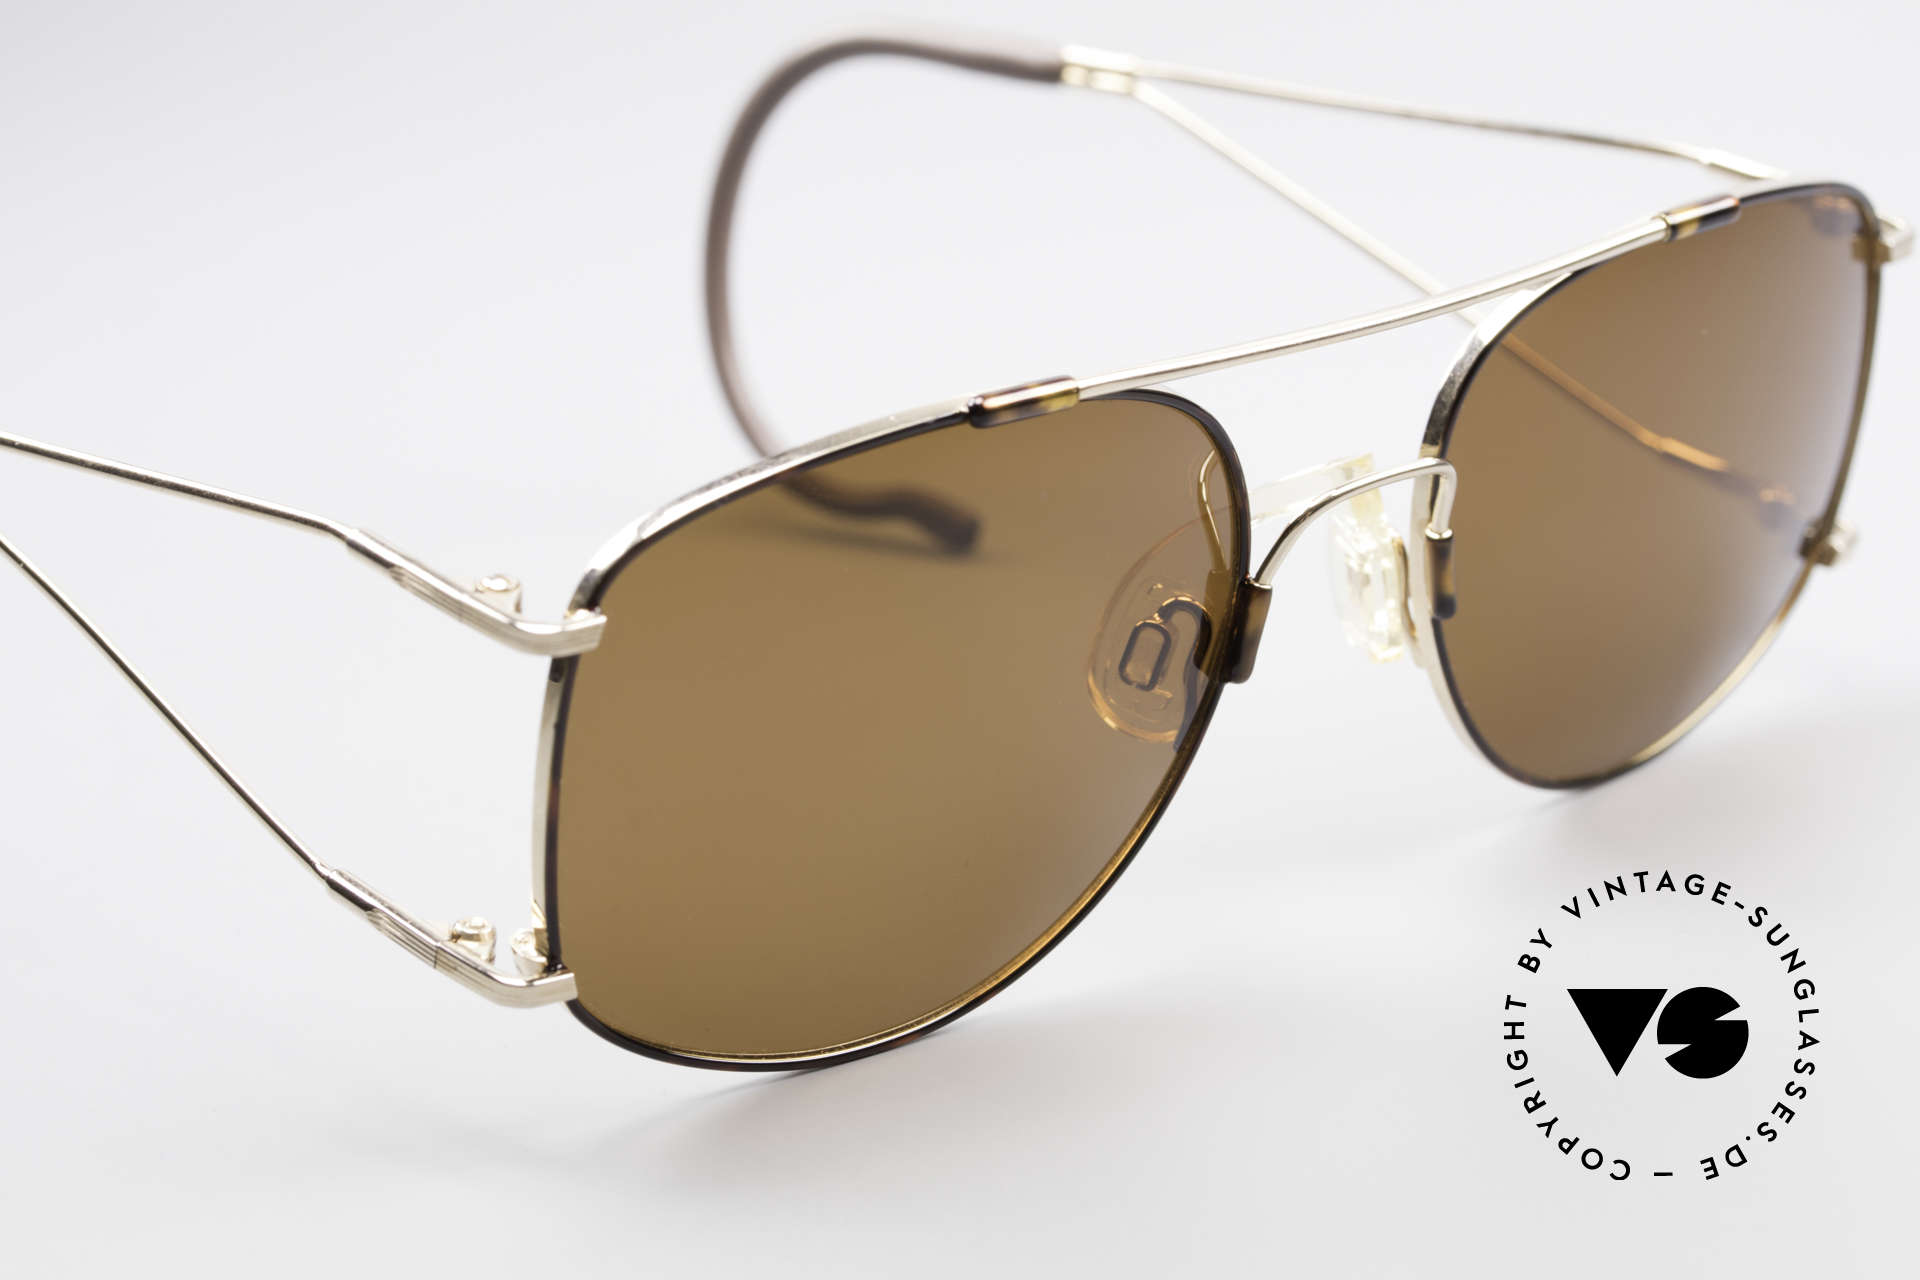 Neostyle Sunsport 1501 Titanflex Vintage Sunglasses, the so called 'MEMORY EFFECT' is simply ingenious, Made for Men